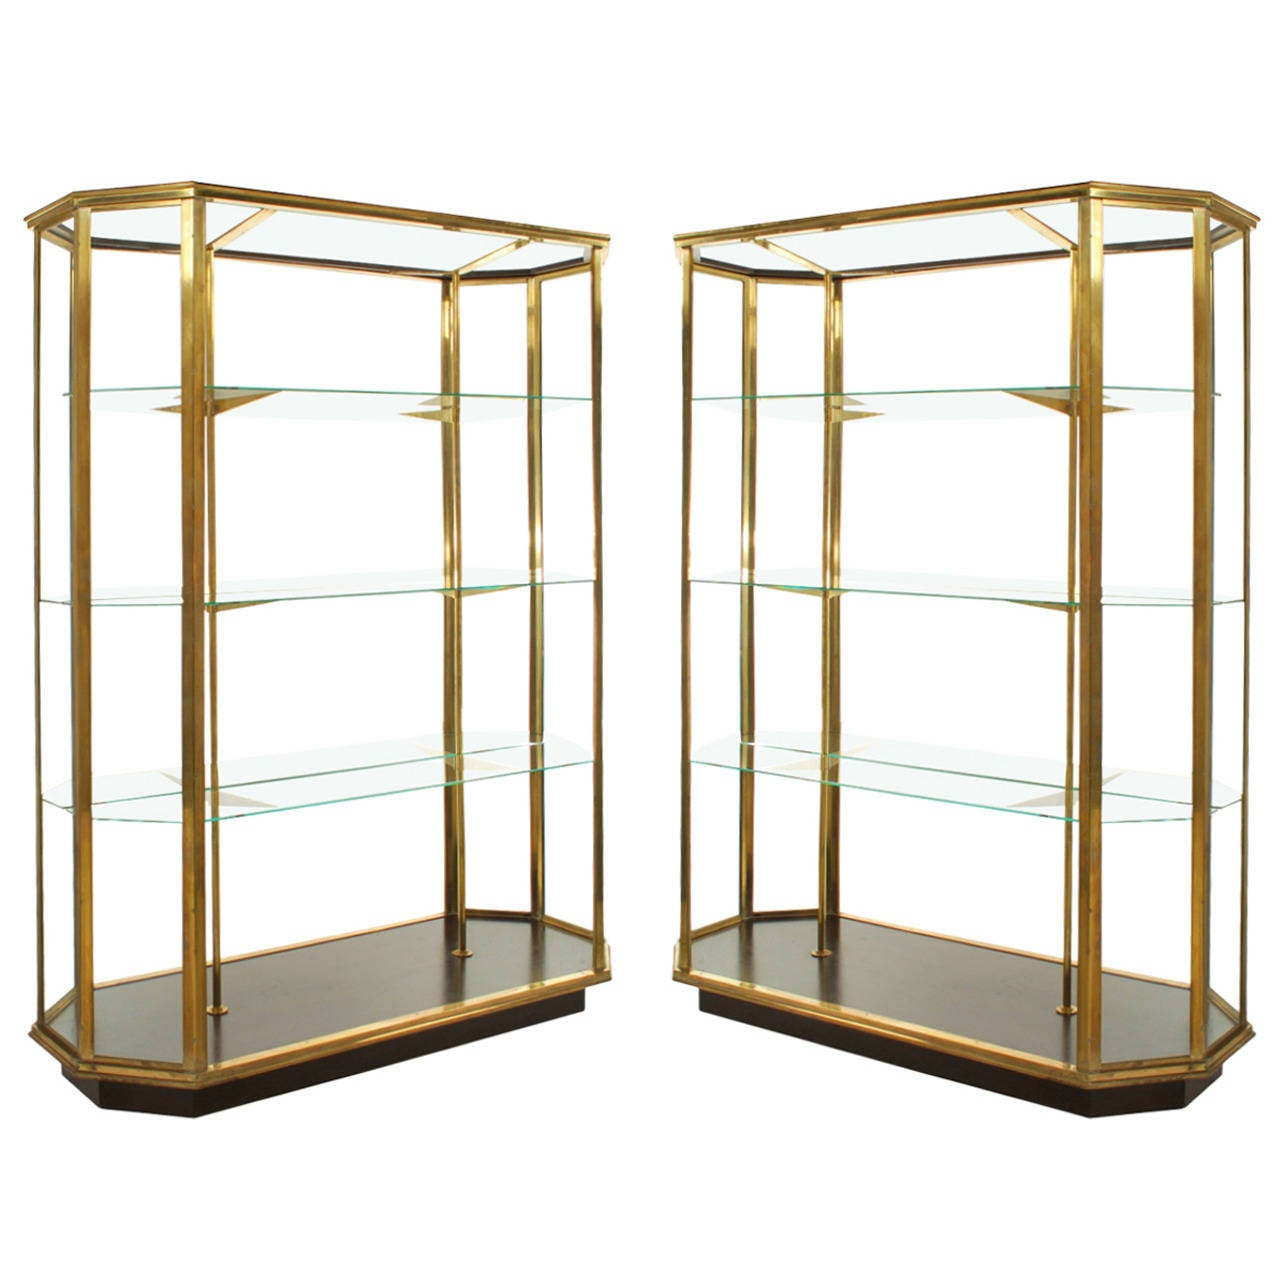 First Dibs Home Decor Pair Of Double Sided Solid Brass Vitrines Store Display